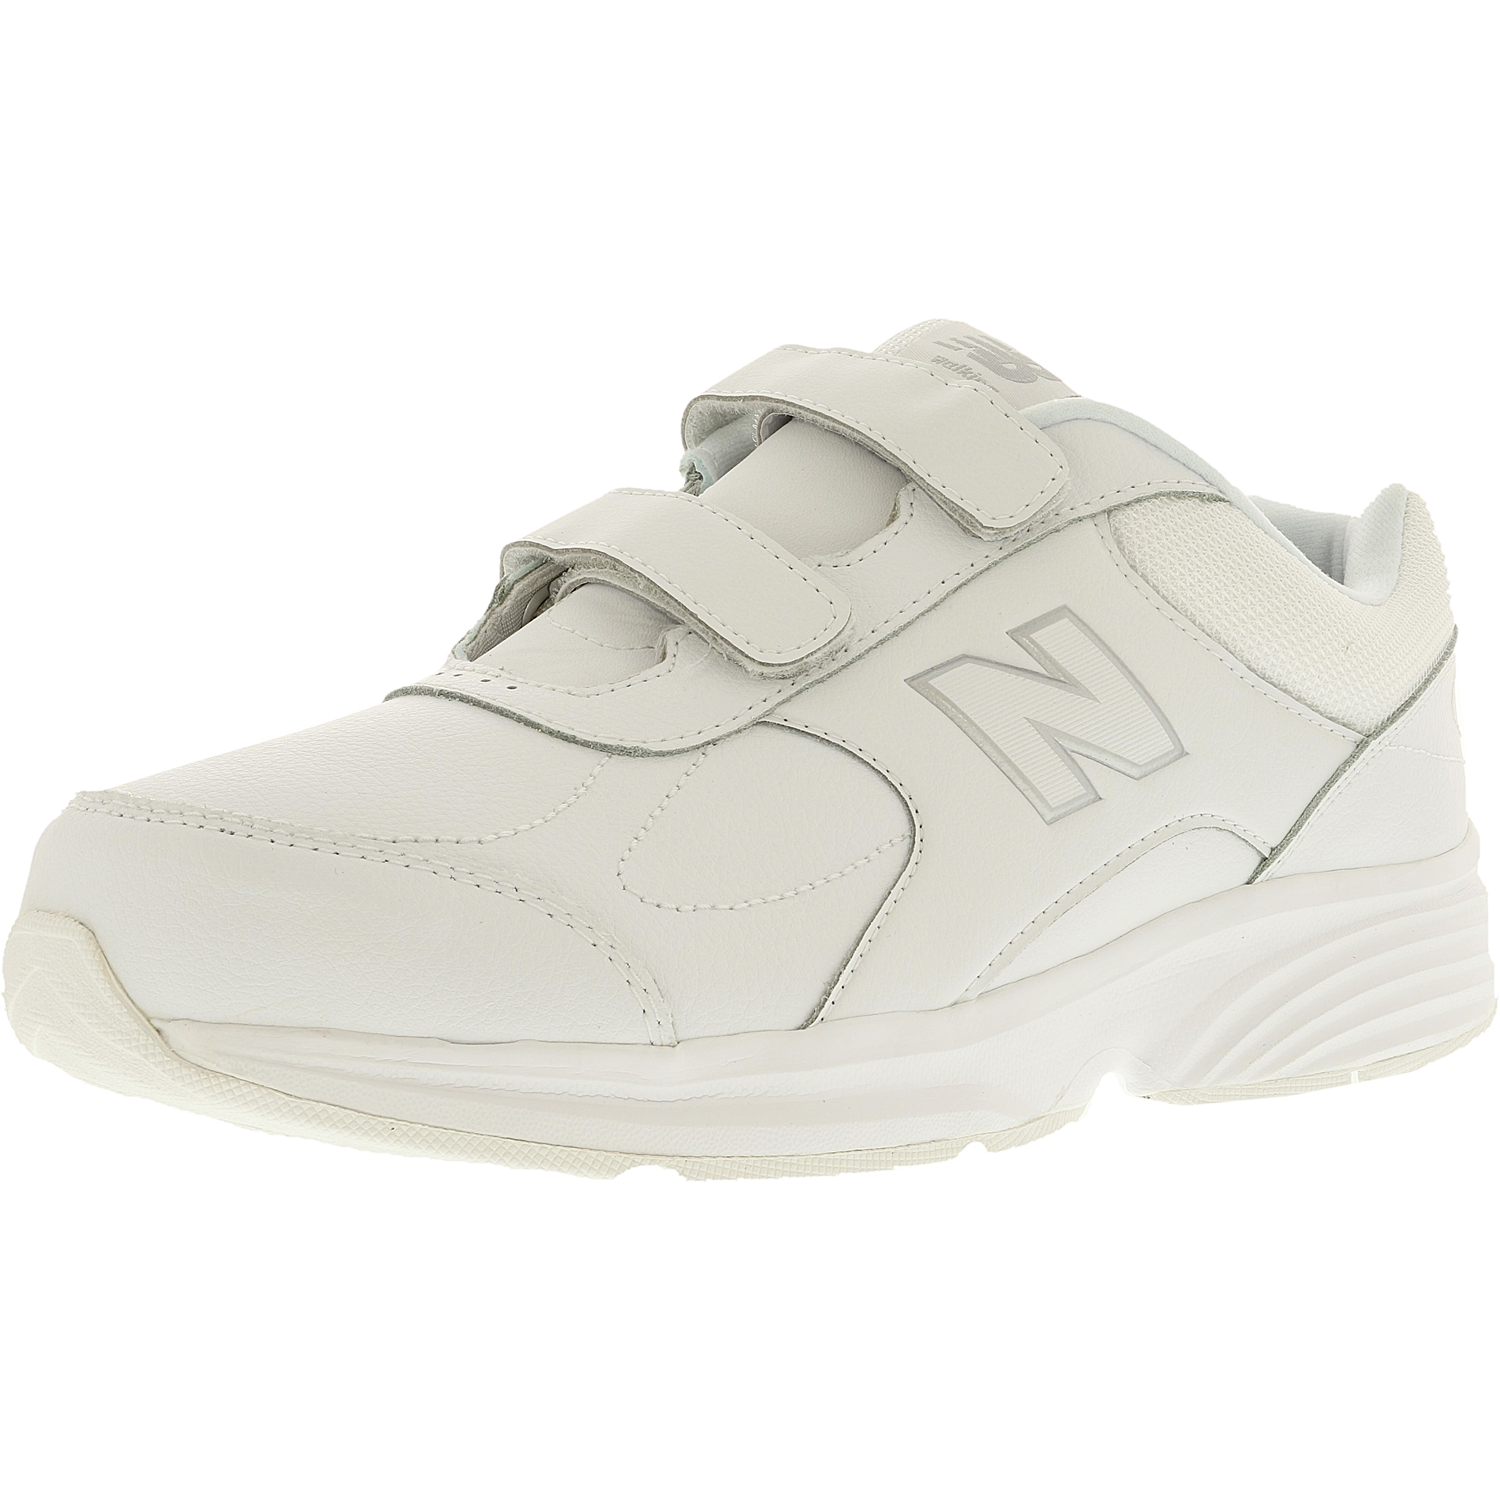 New Balance Men's Mw475 Wv2 Ankle-High Walking Shoe 8.5W by New Balance